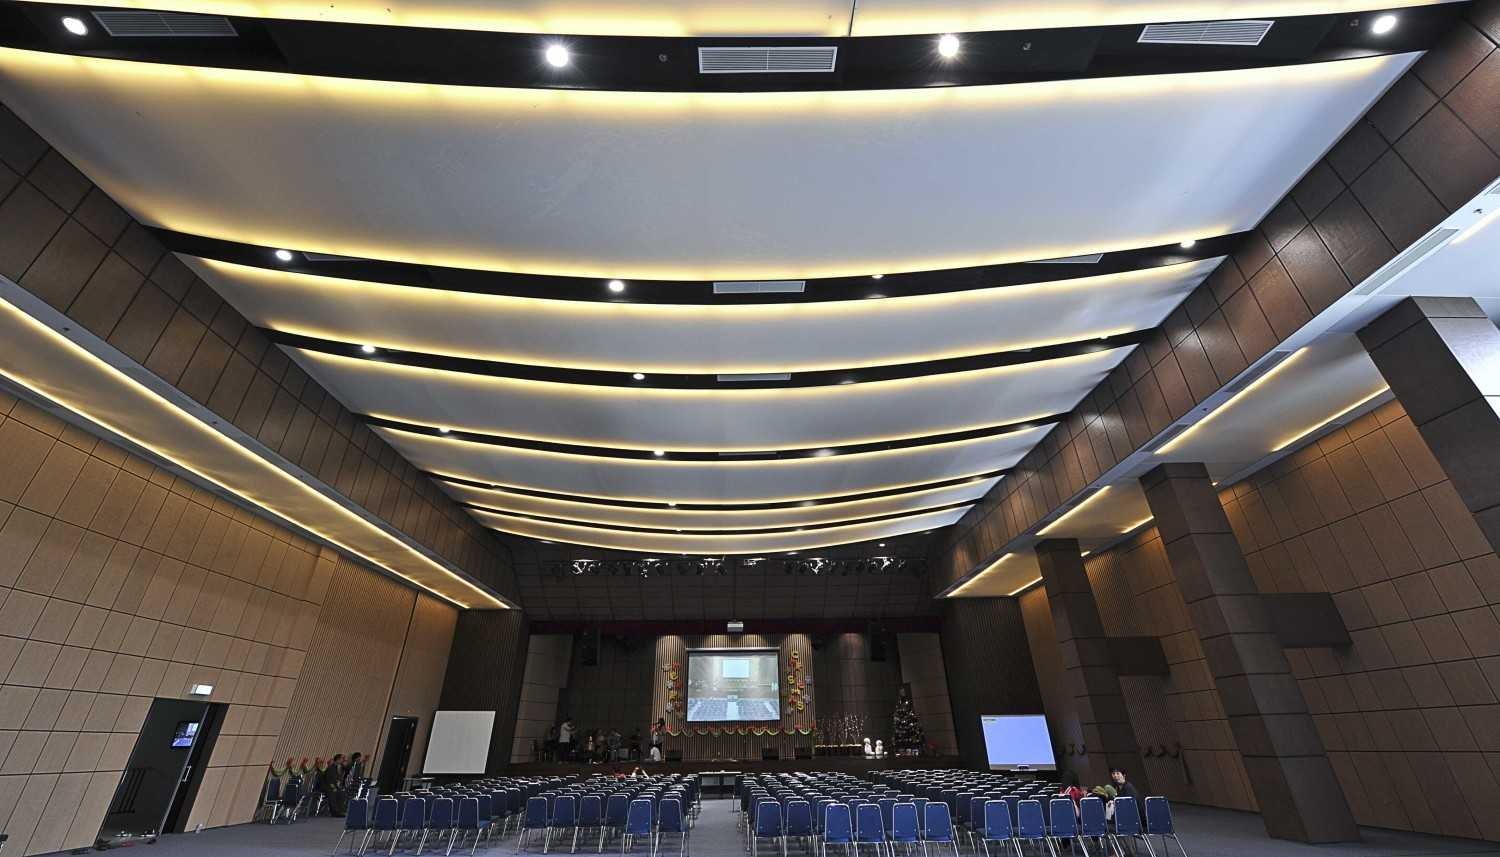 Aqustica Function Hall Bpk Penabur International Jakarta, Indones Jakarta, Indones Photo-29750 Modern 29751